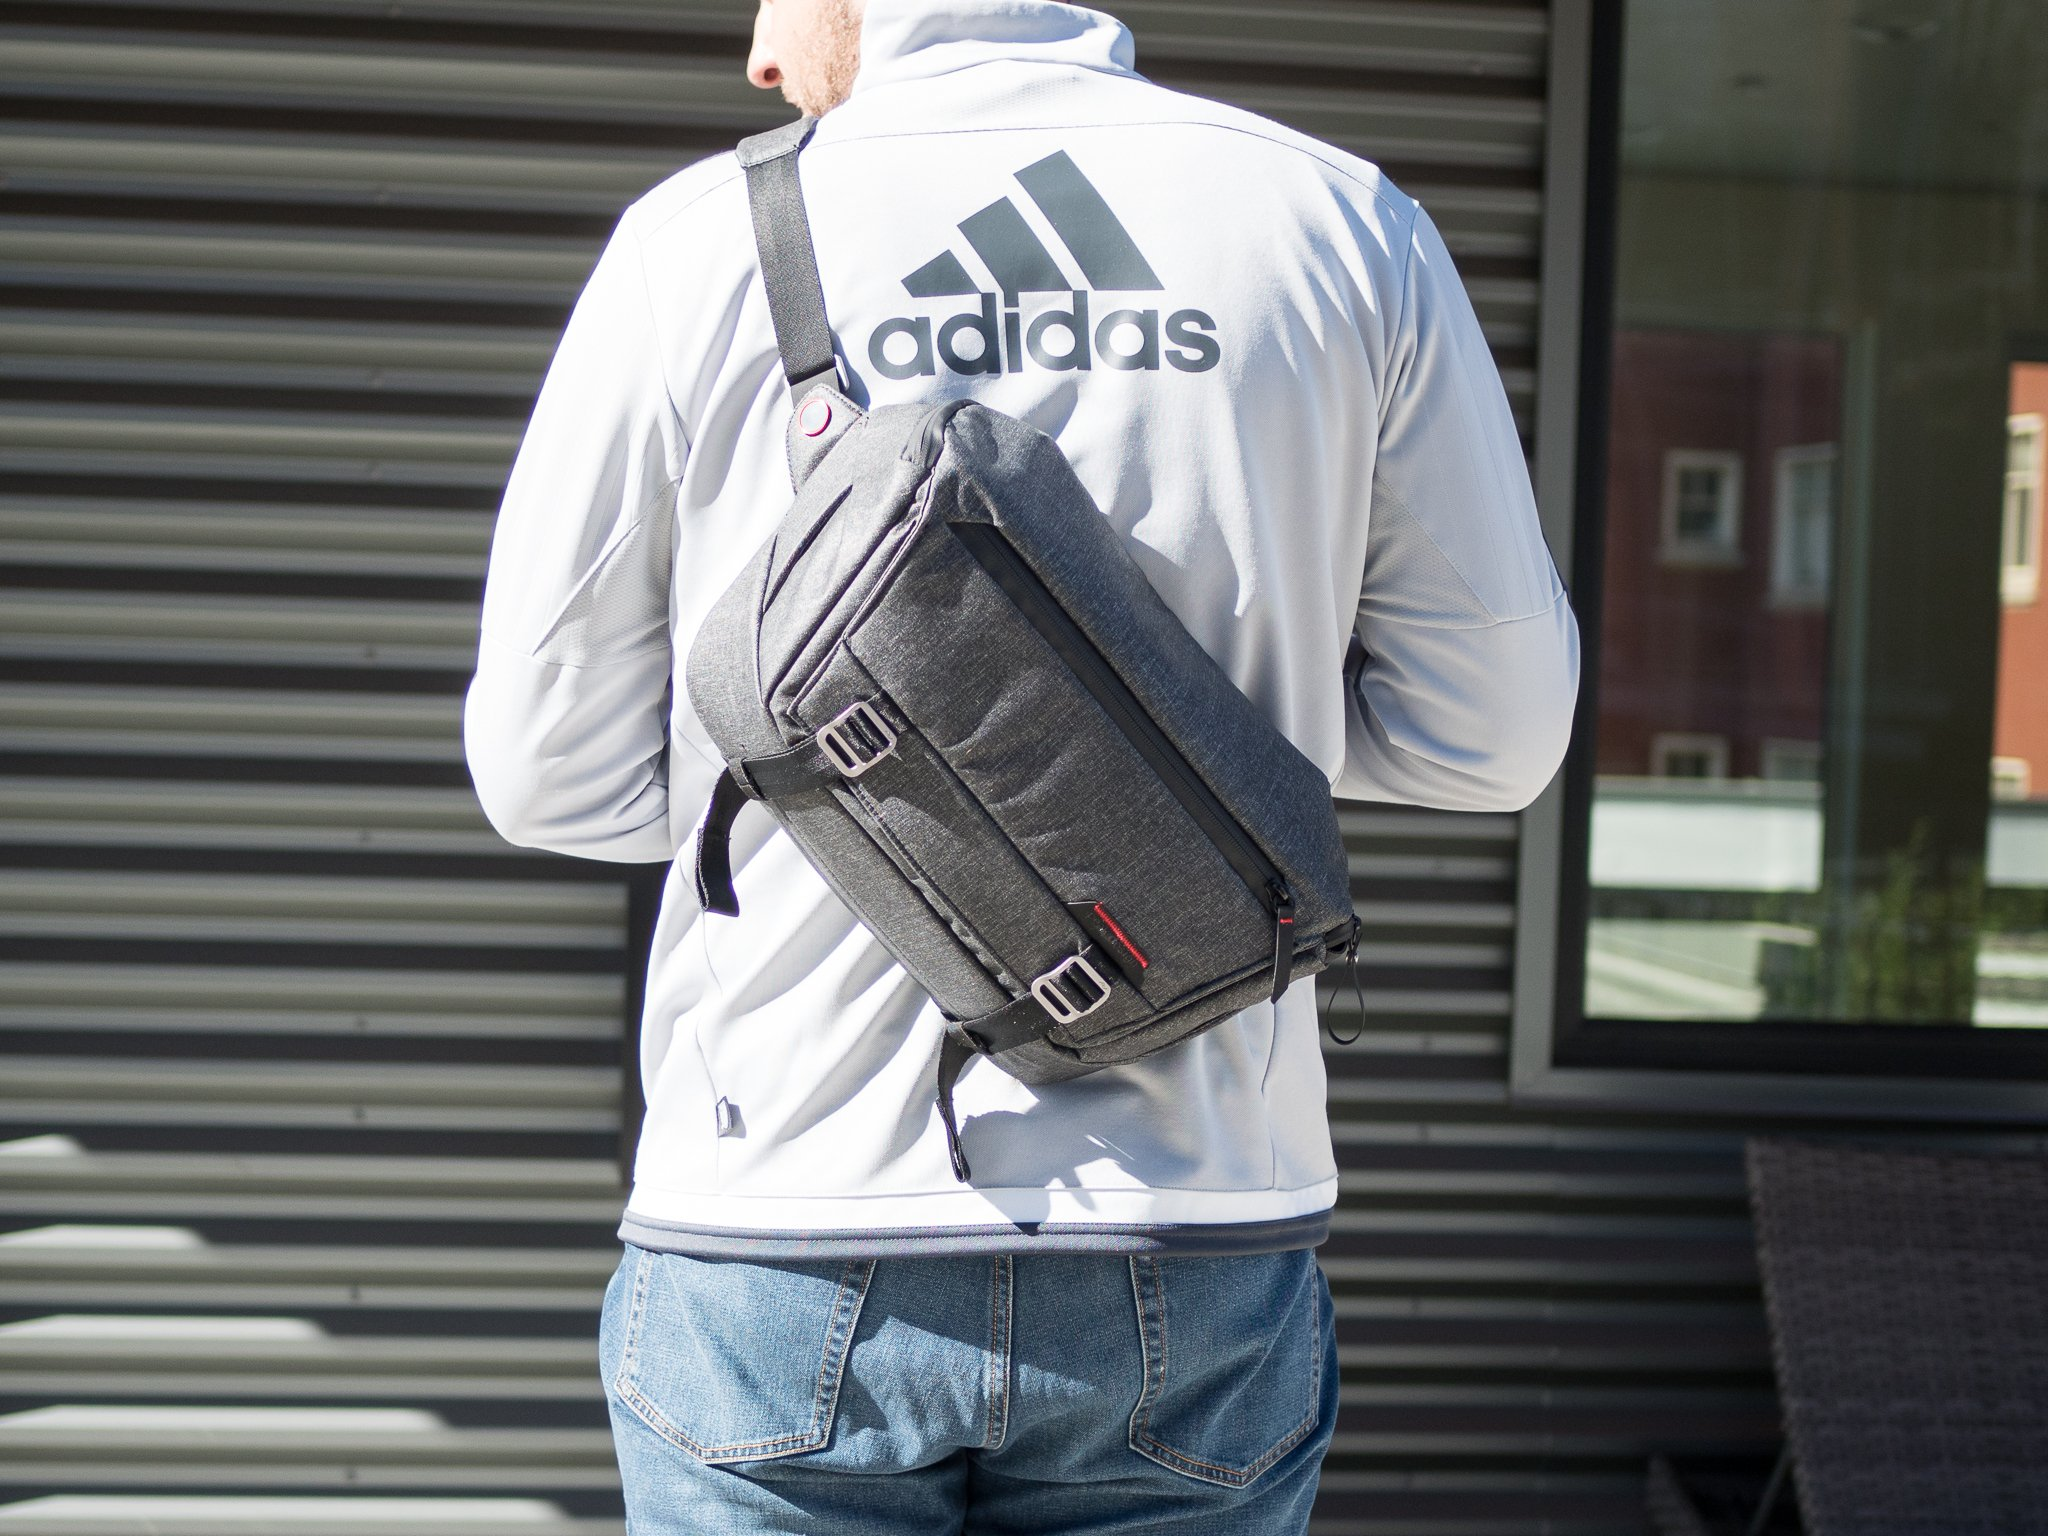 Peak Design Peak Design Everyday Sling Is A Great Daily Carry Bag For More